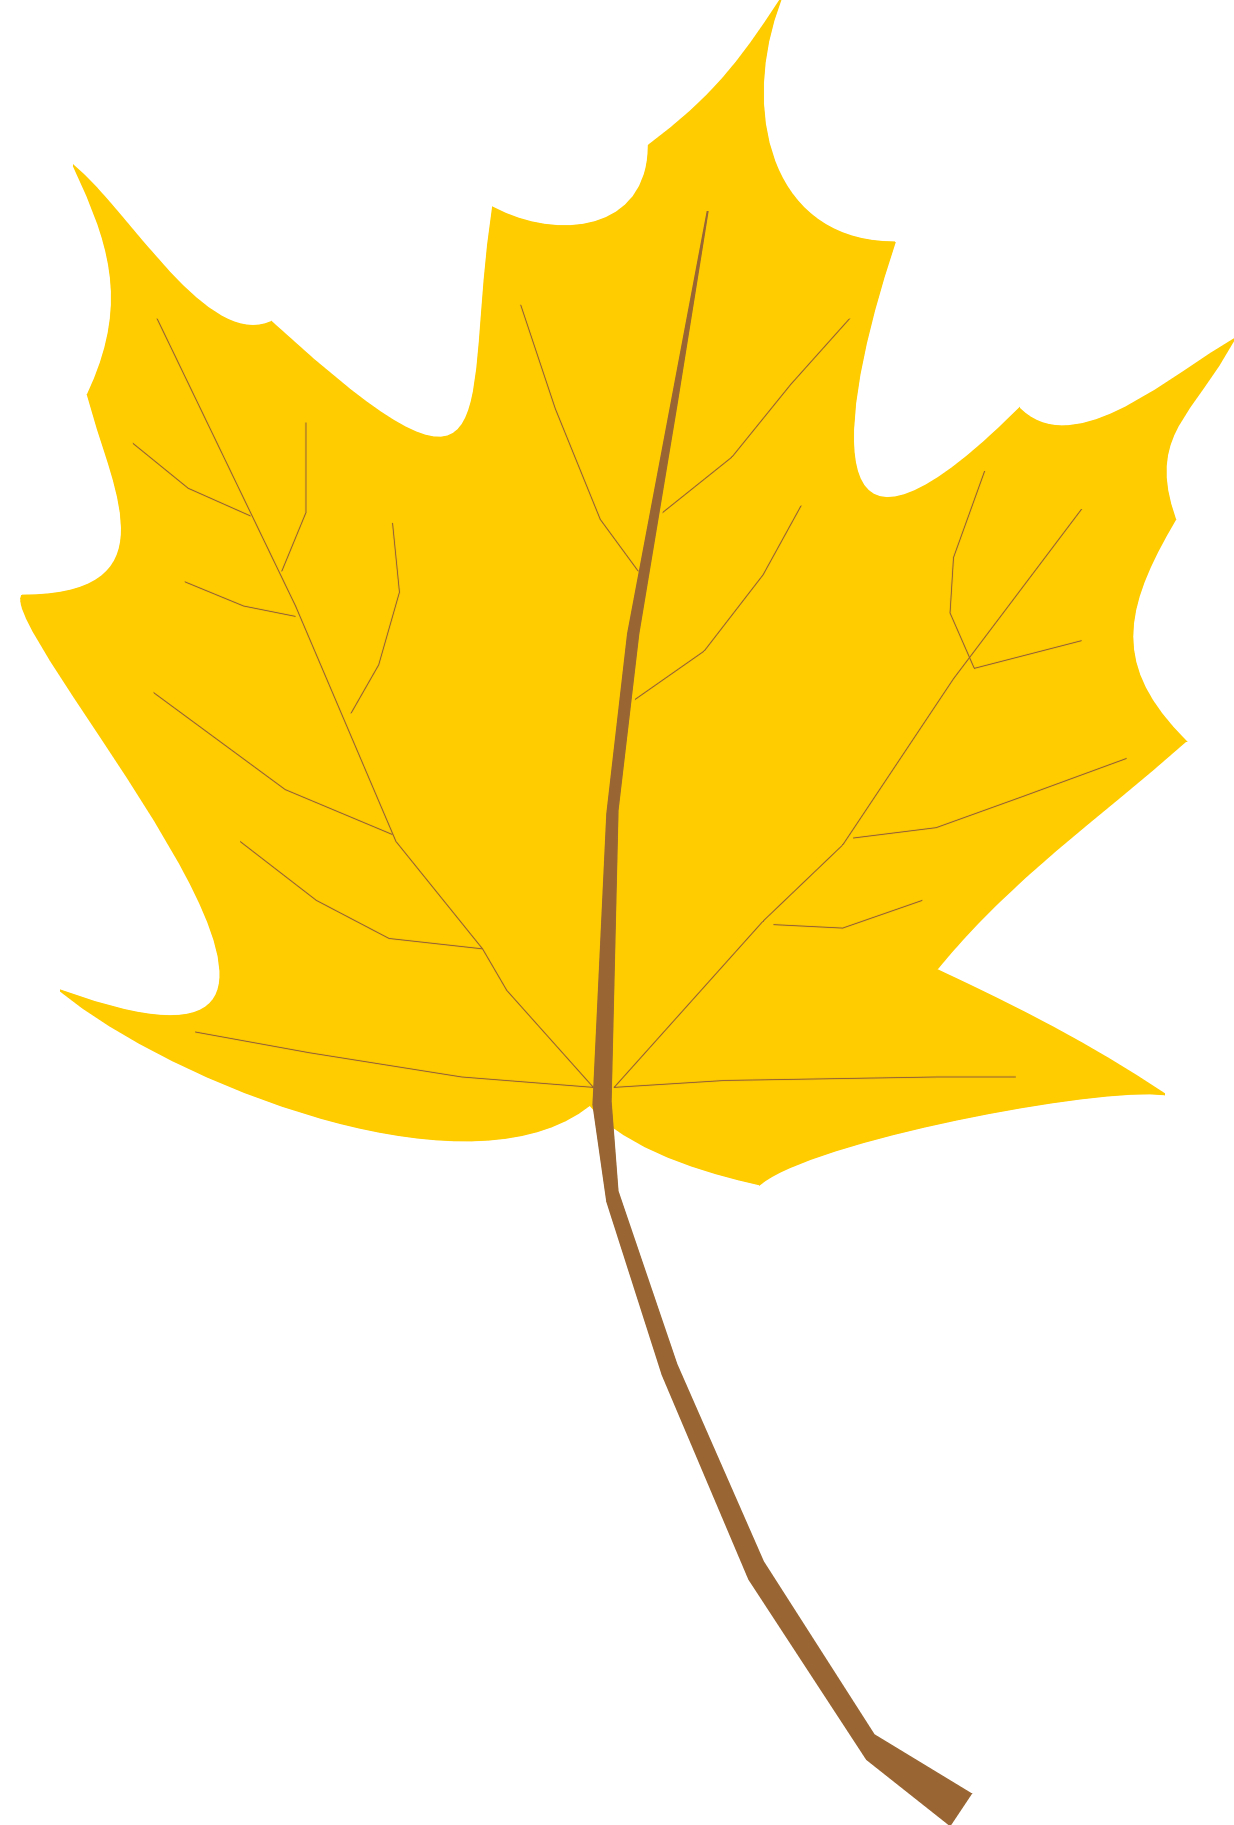 Olympic Border Clipart Yellowleaf image - vector clip